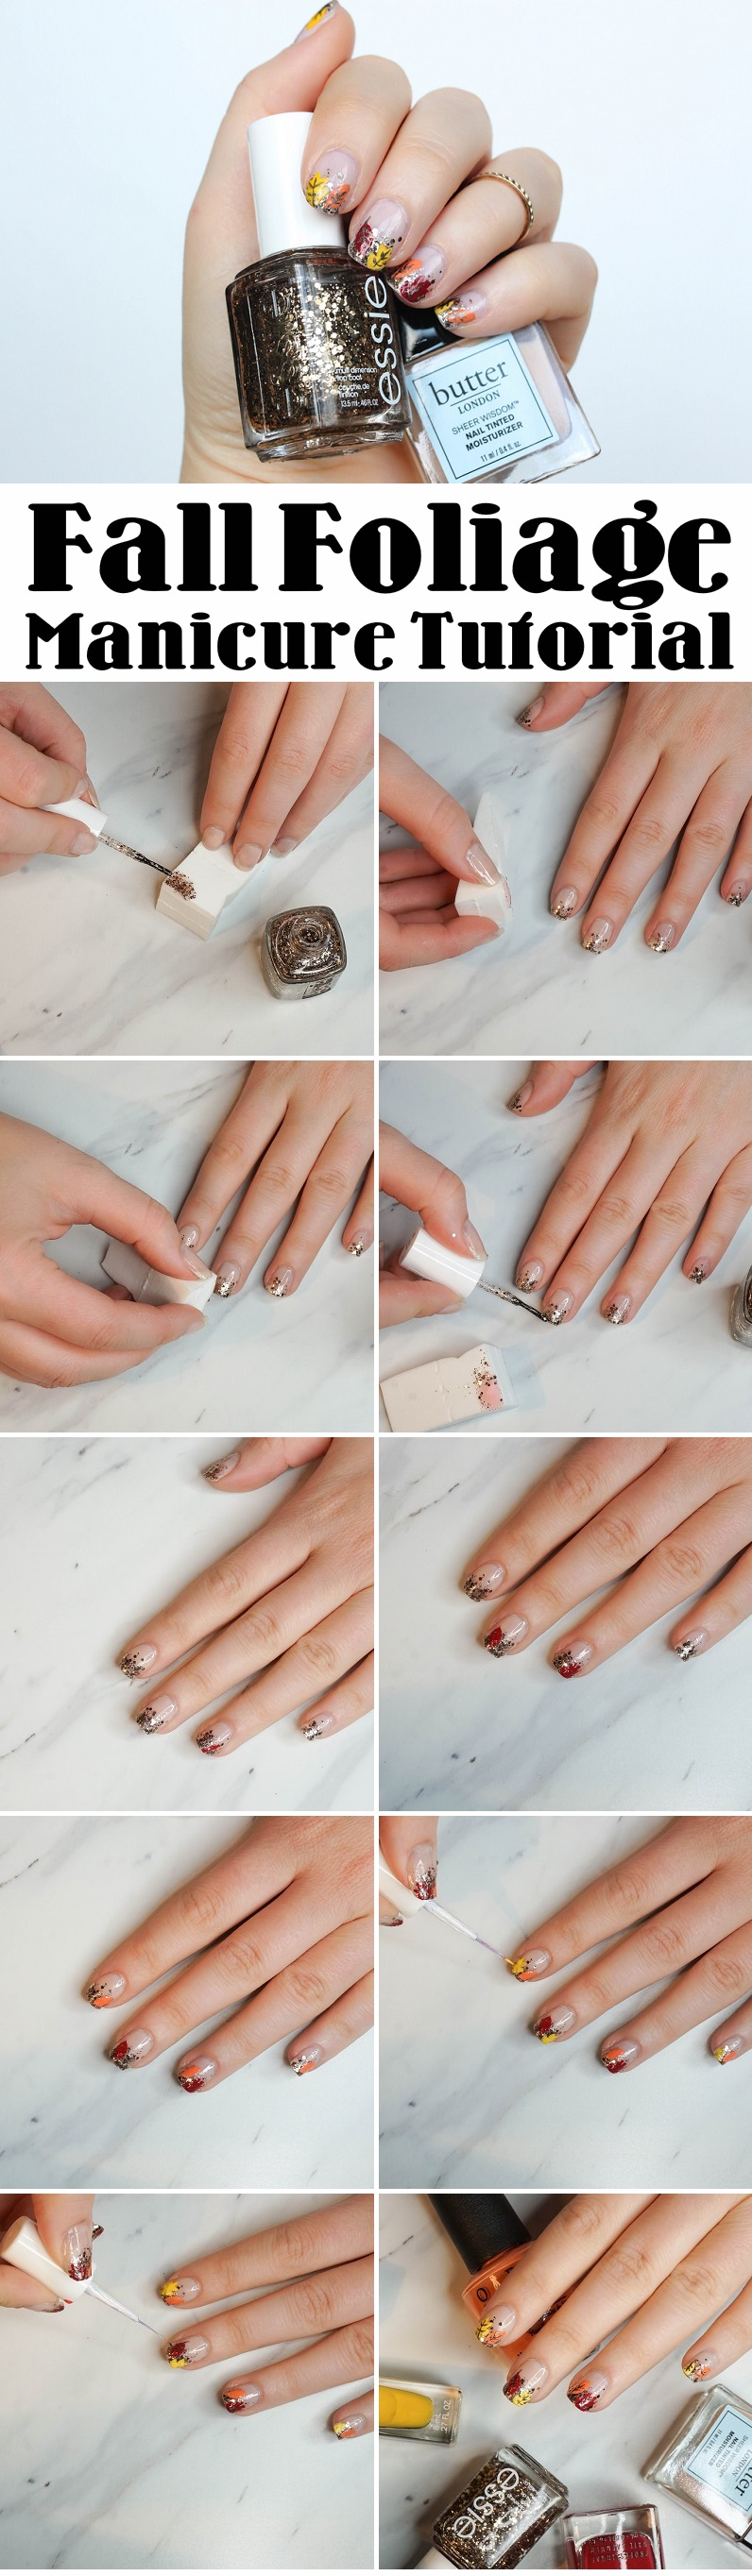 Step by Step Fall Foliage Manicure Tutorial Glitter Nail Art Jackie Giardina Living After Midnite